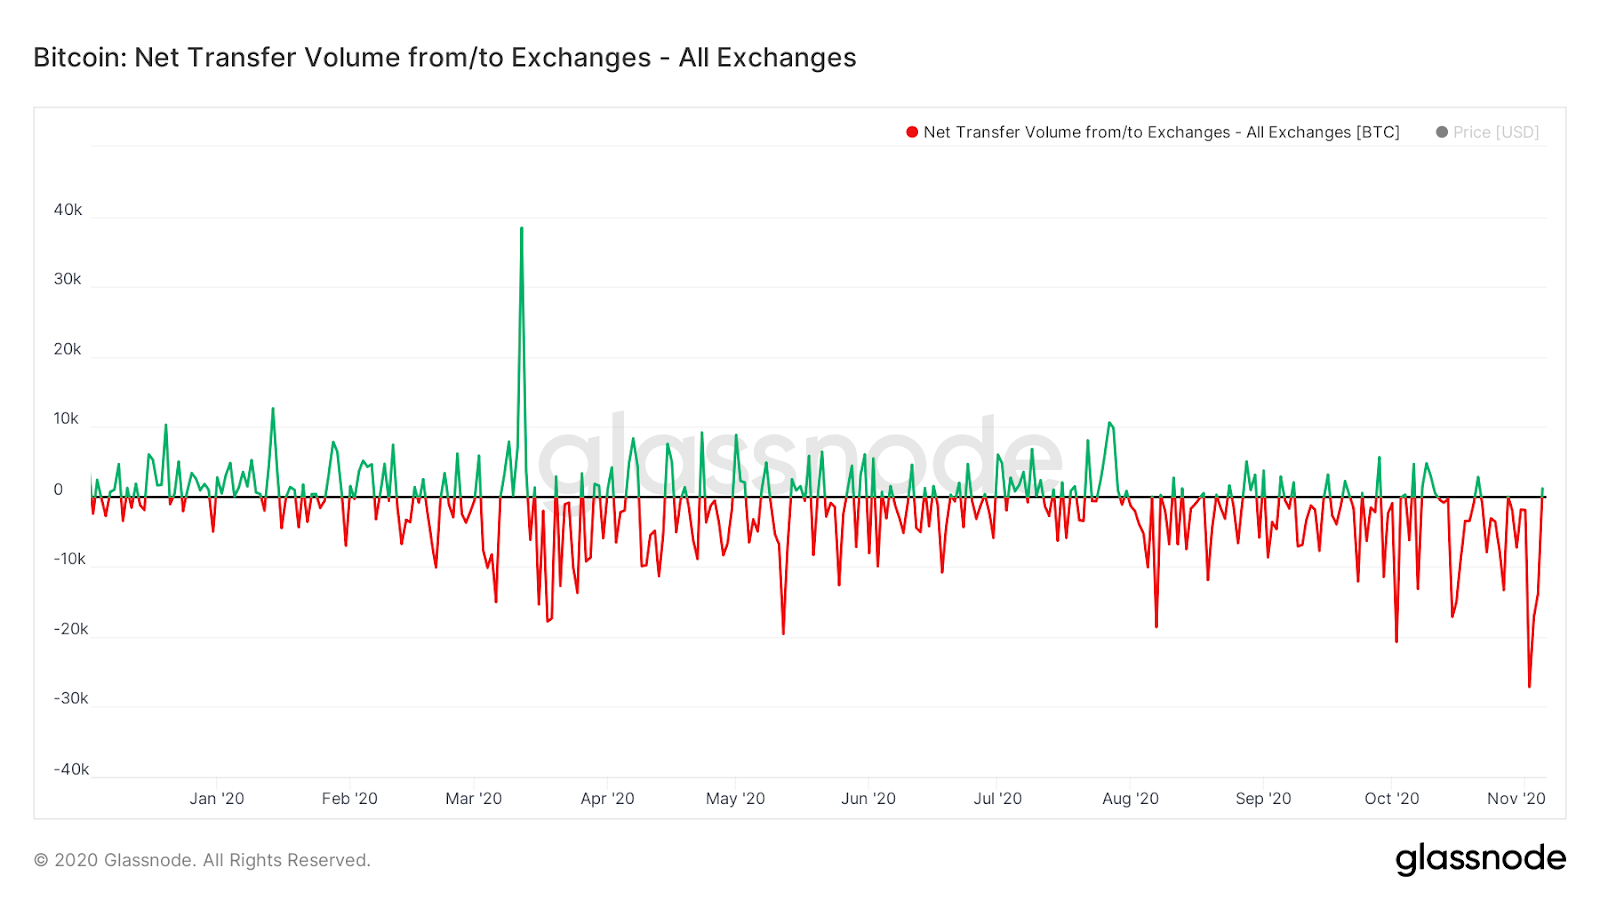 Net flow of Bitcoin to and from cryptocurrency exchanges